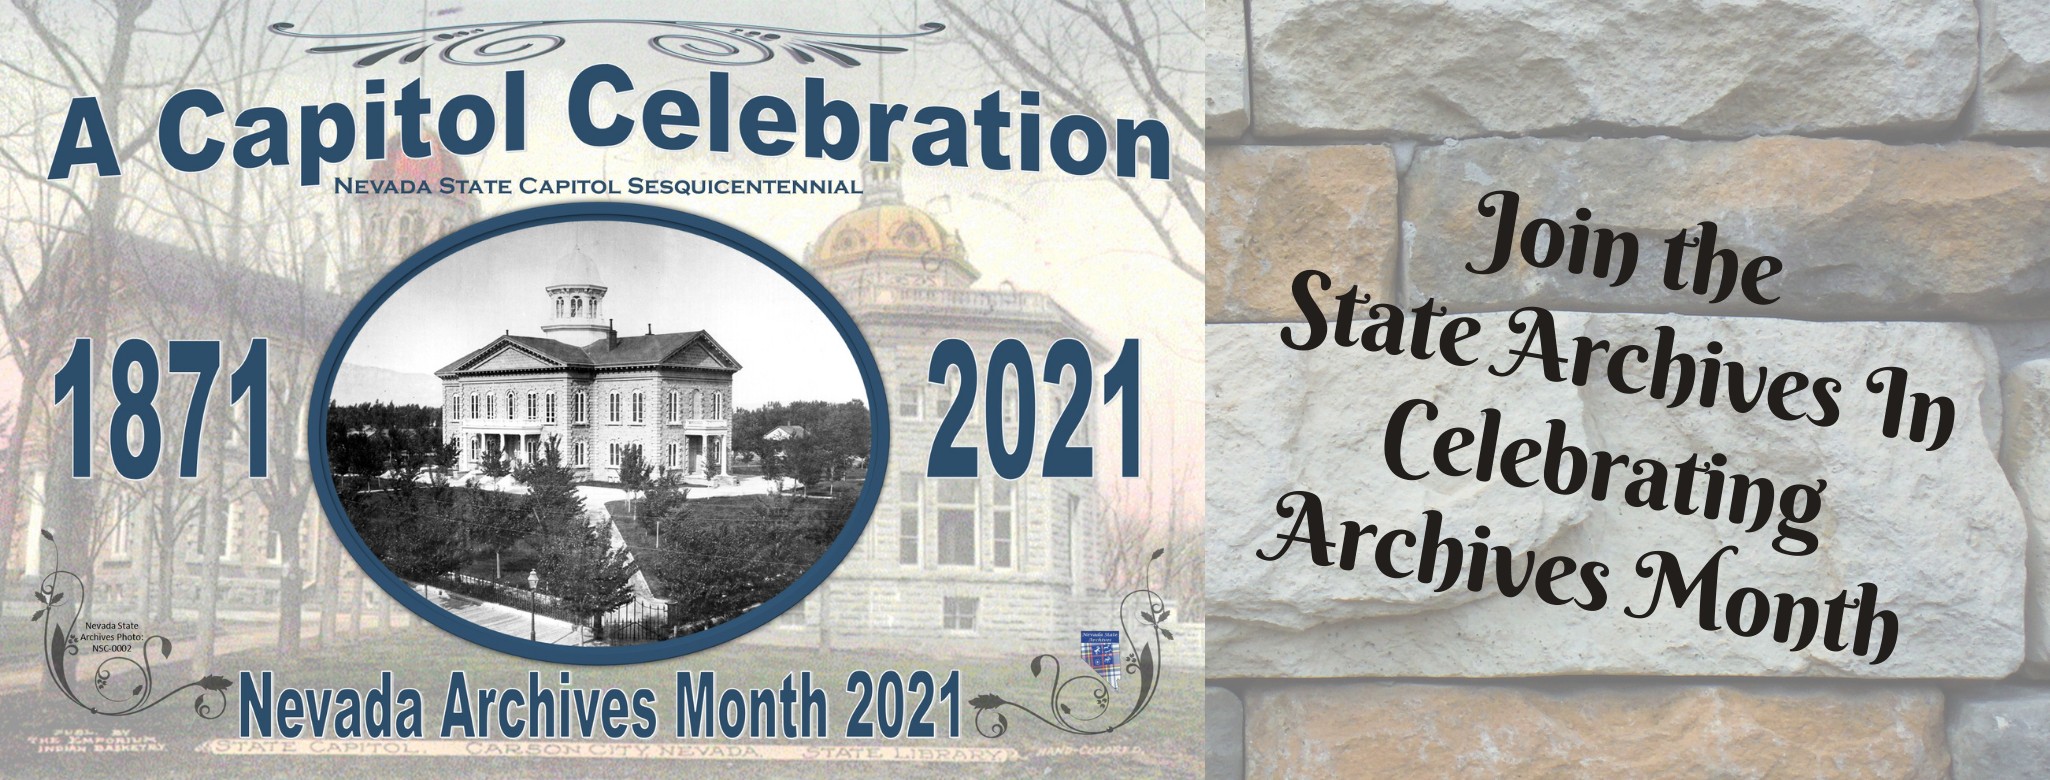 Join the State Archives in Celebrating Archives Month